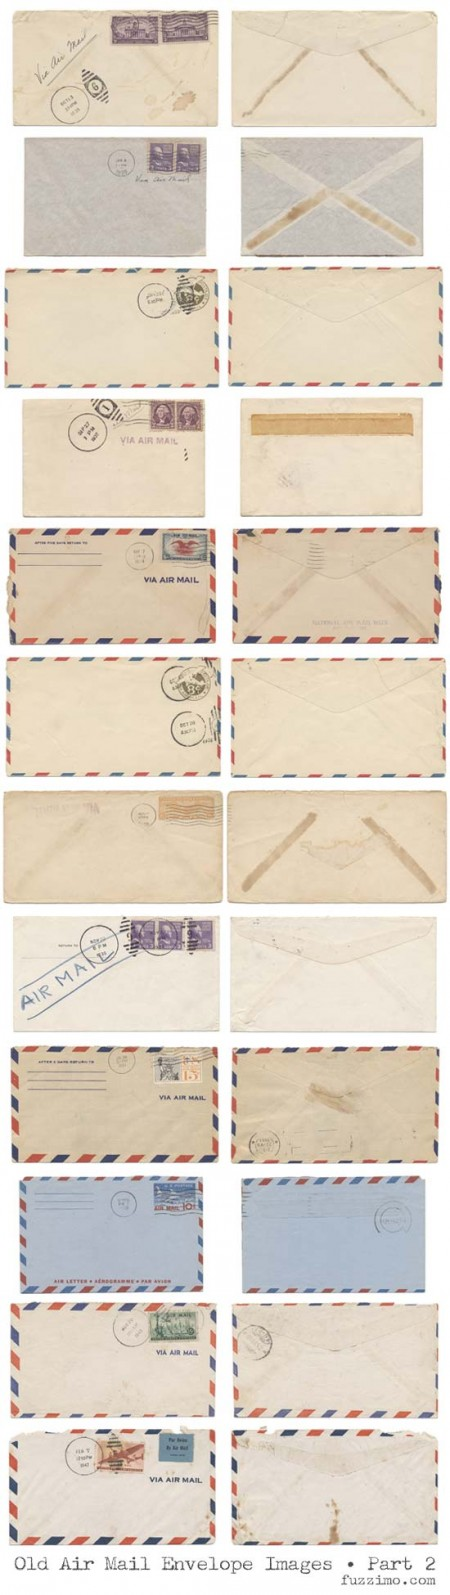 fzm-Old-Air-Mail-Envelopes-2-02-450x1595